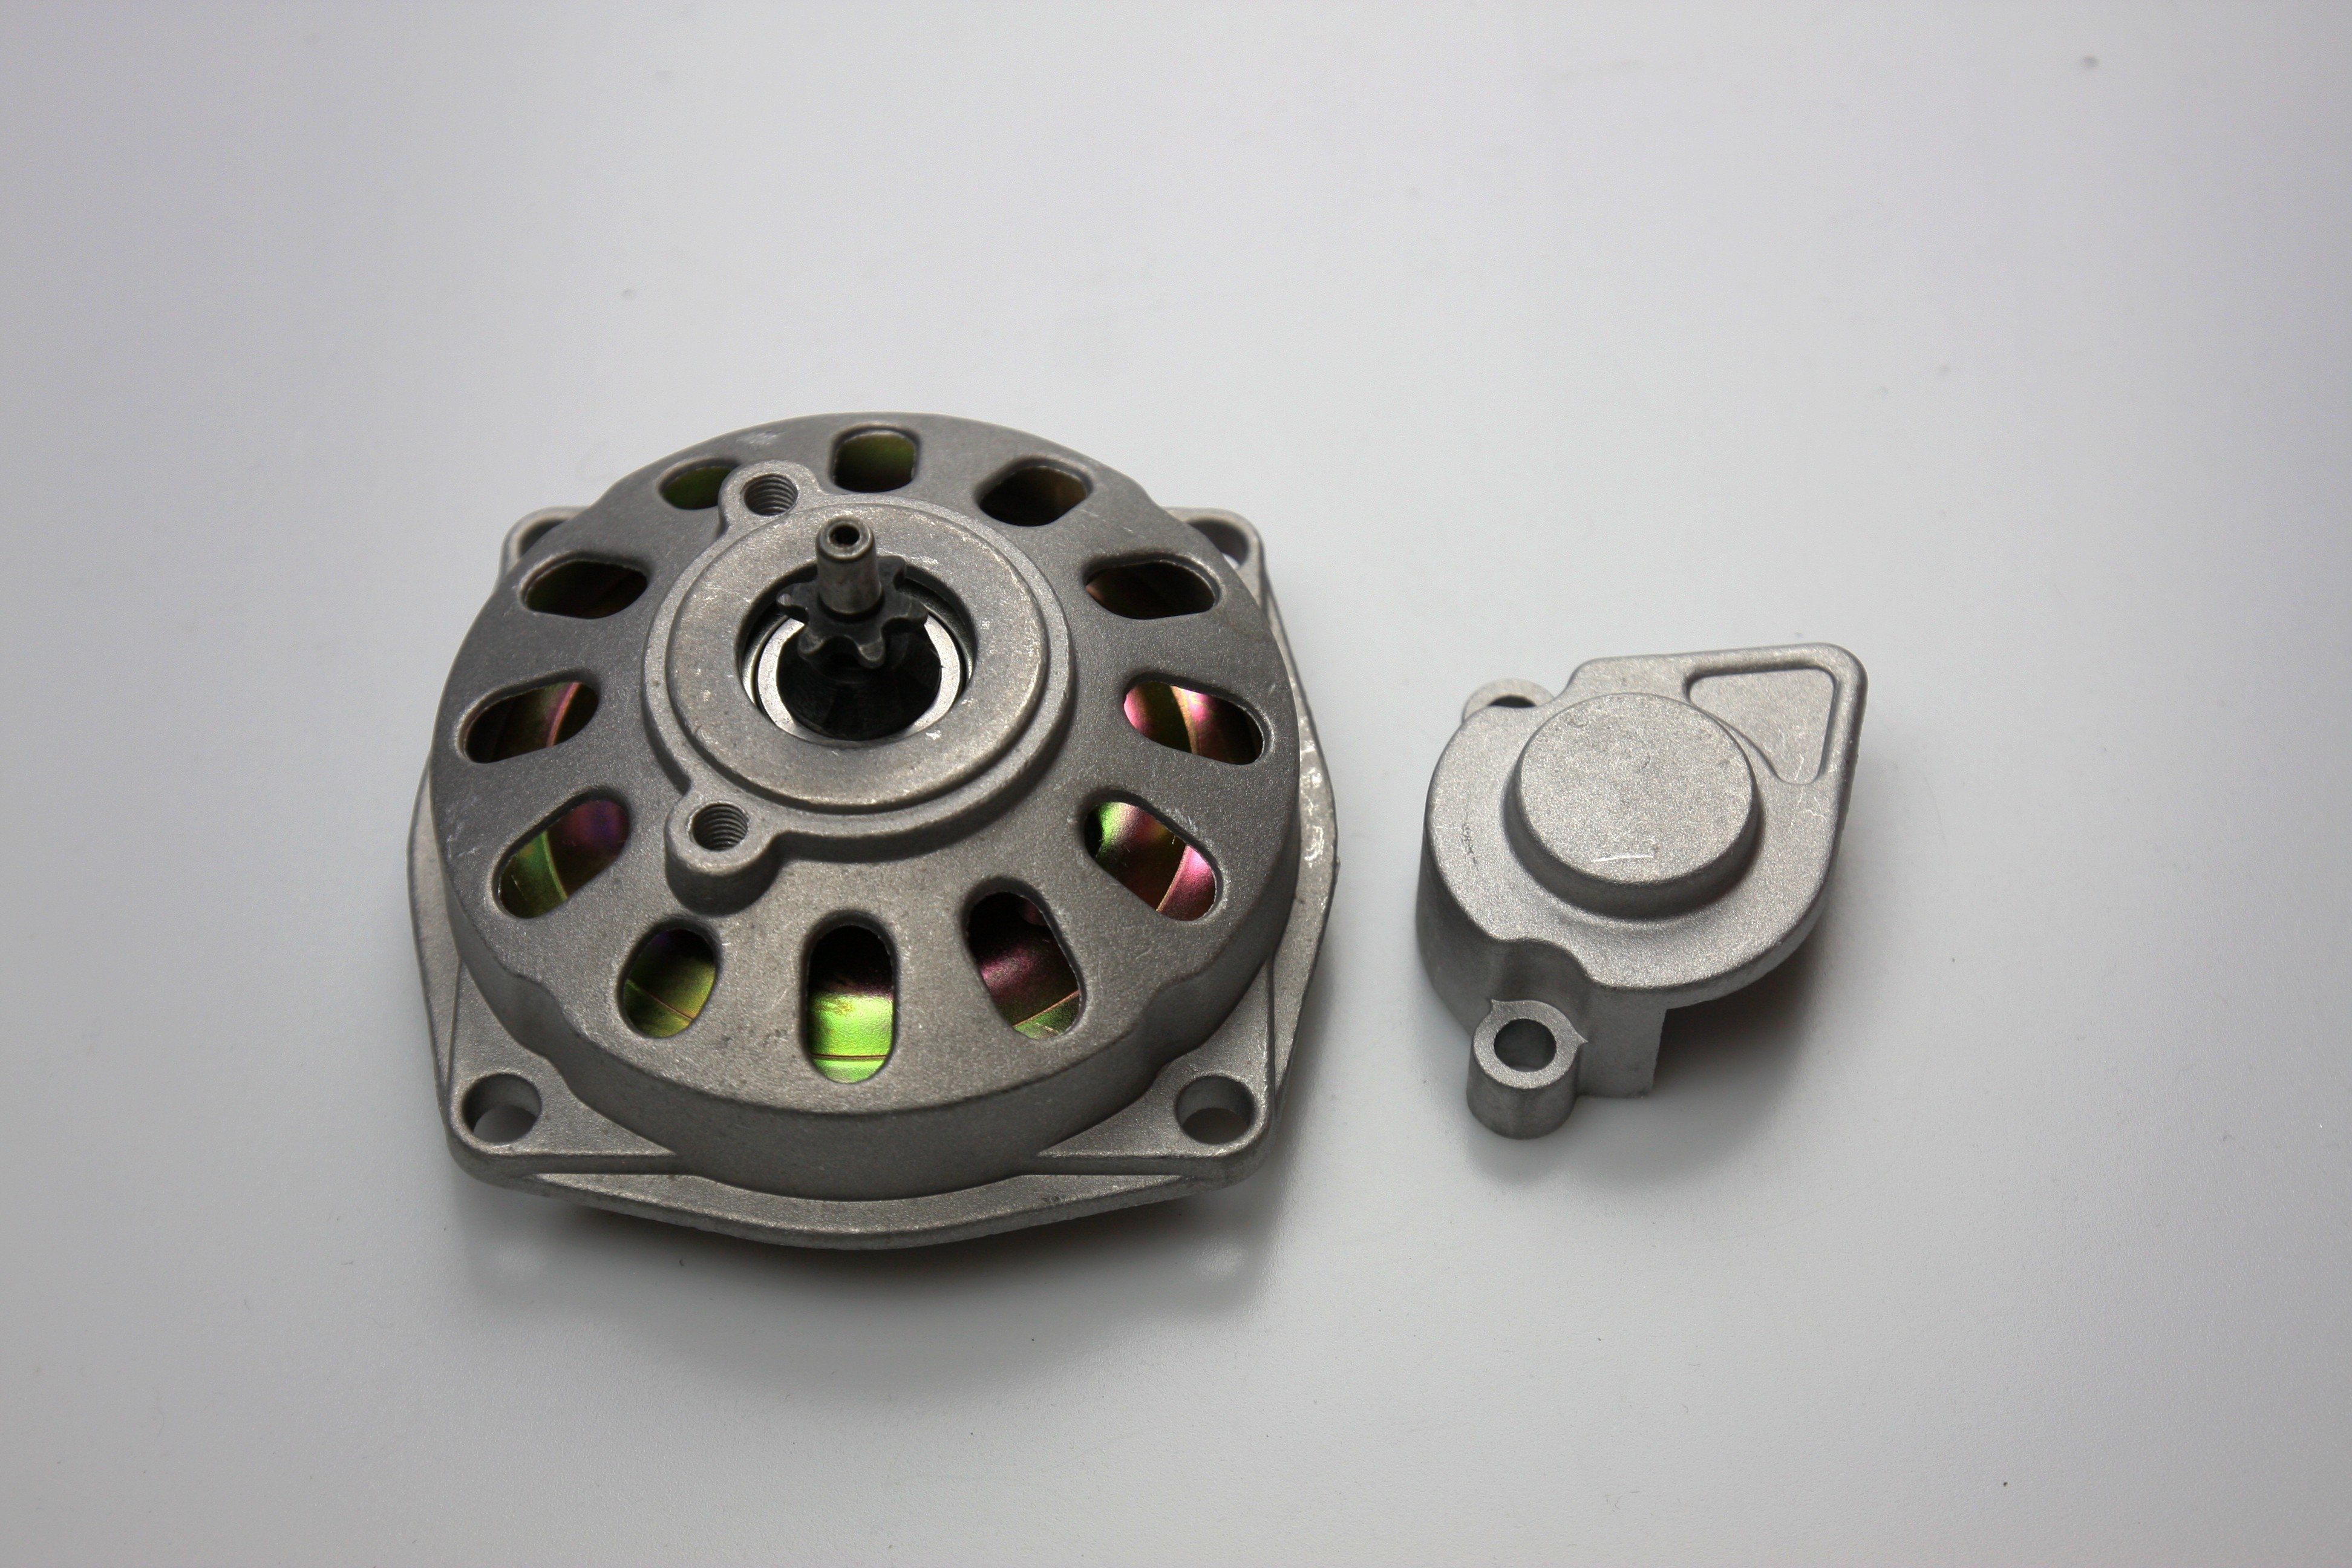 Snw Trade Home 49cc Clutch Bell Housing 6t Sprocket With Cover Fuse Box B And Q Download Original Image